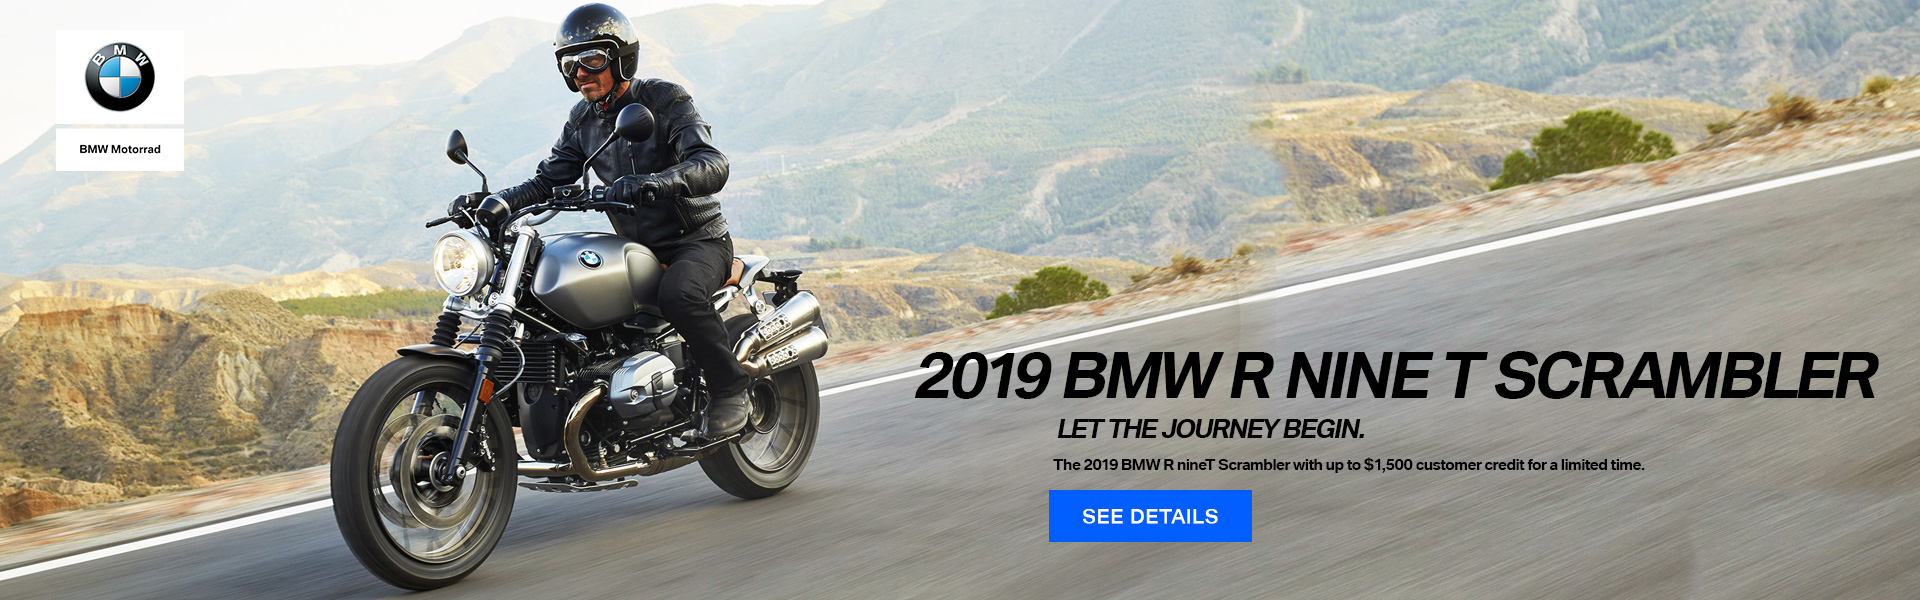 2019 BMW R NINE T SCRAMBLER